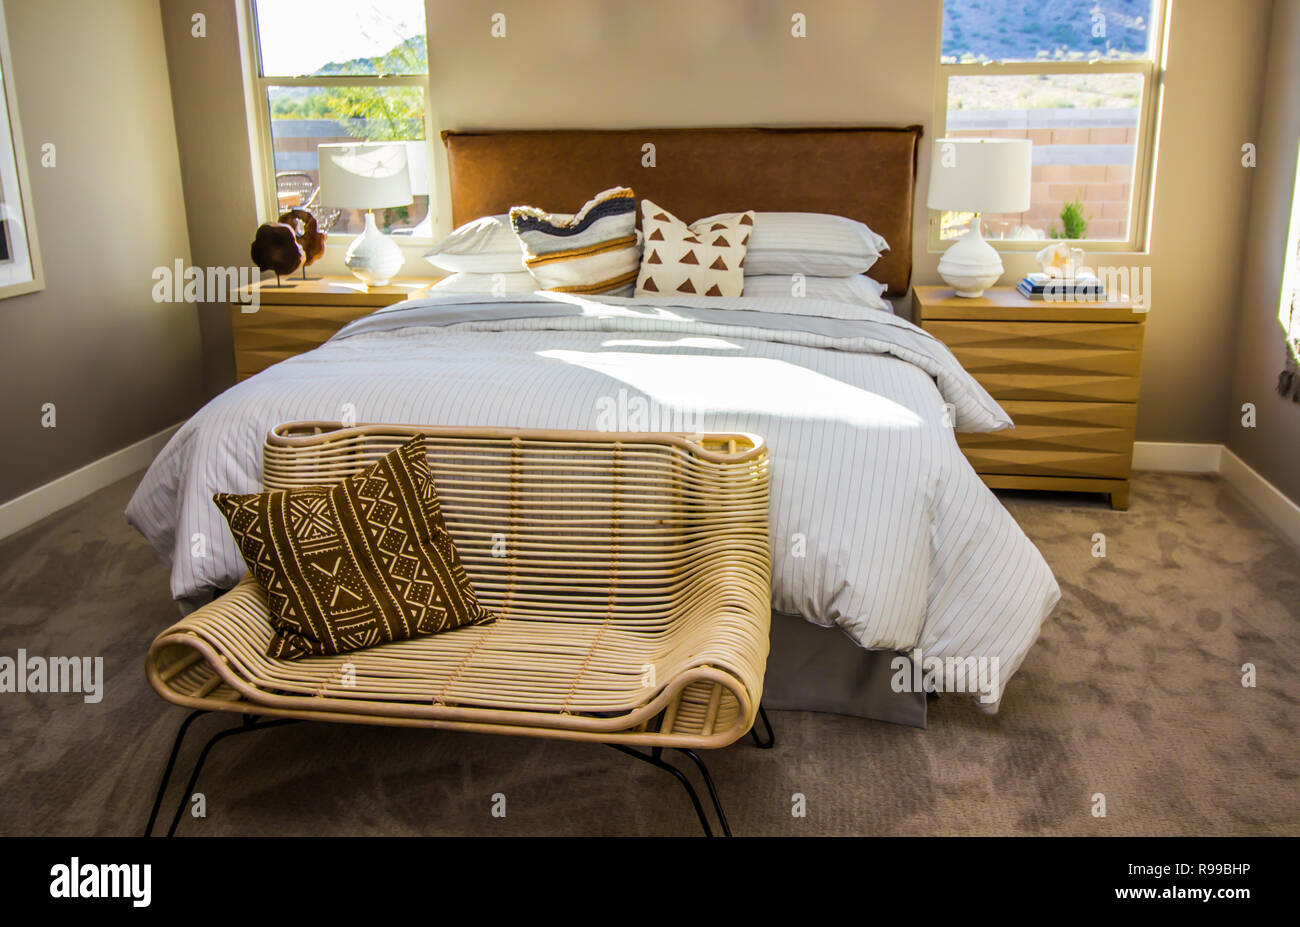 Master Bedroom With Bed Lamps Nightstands And Wicker Chair Stock